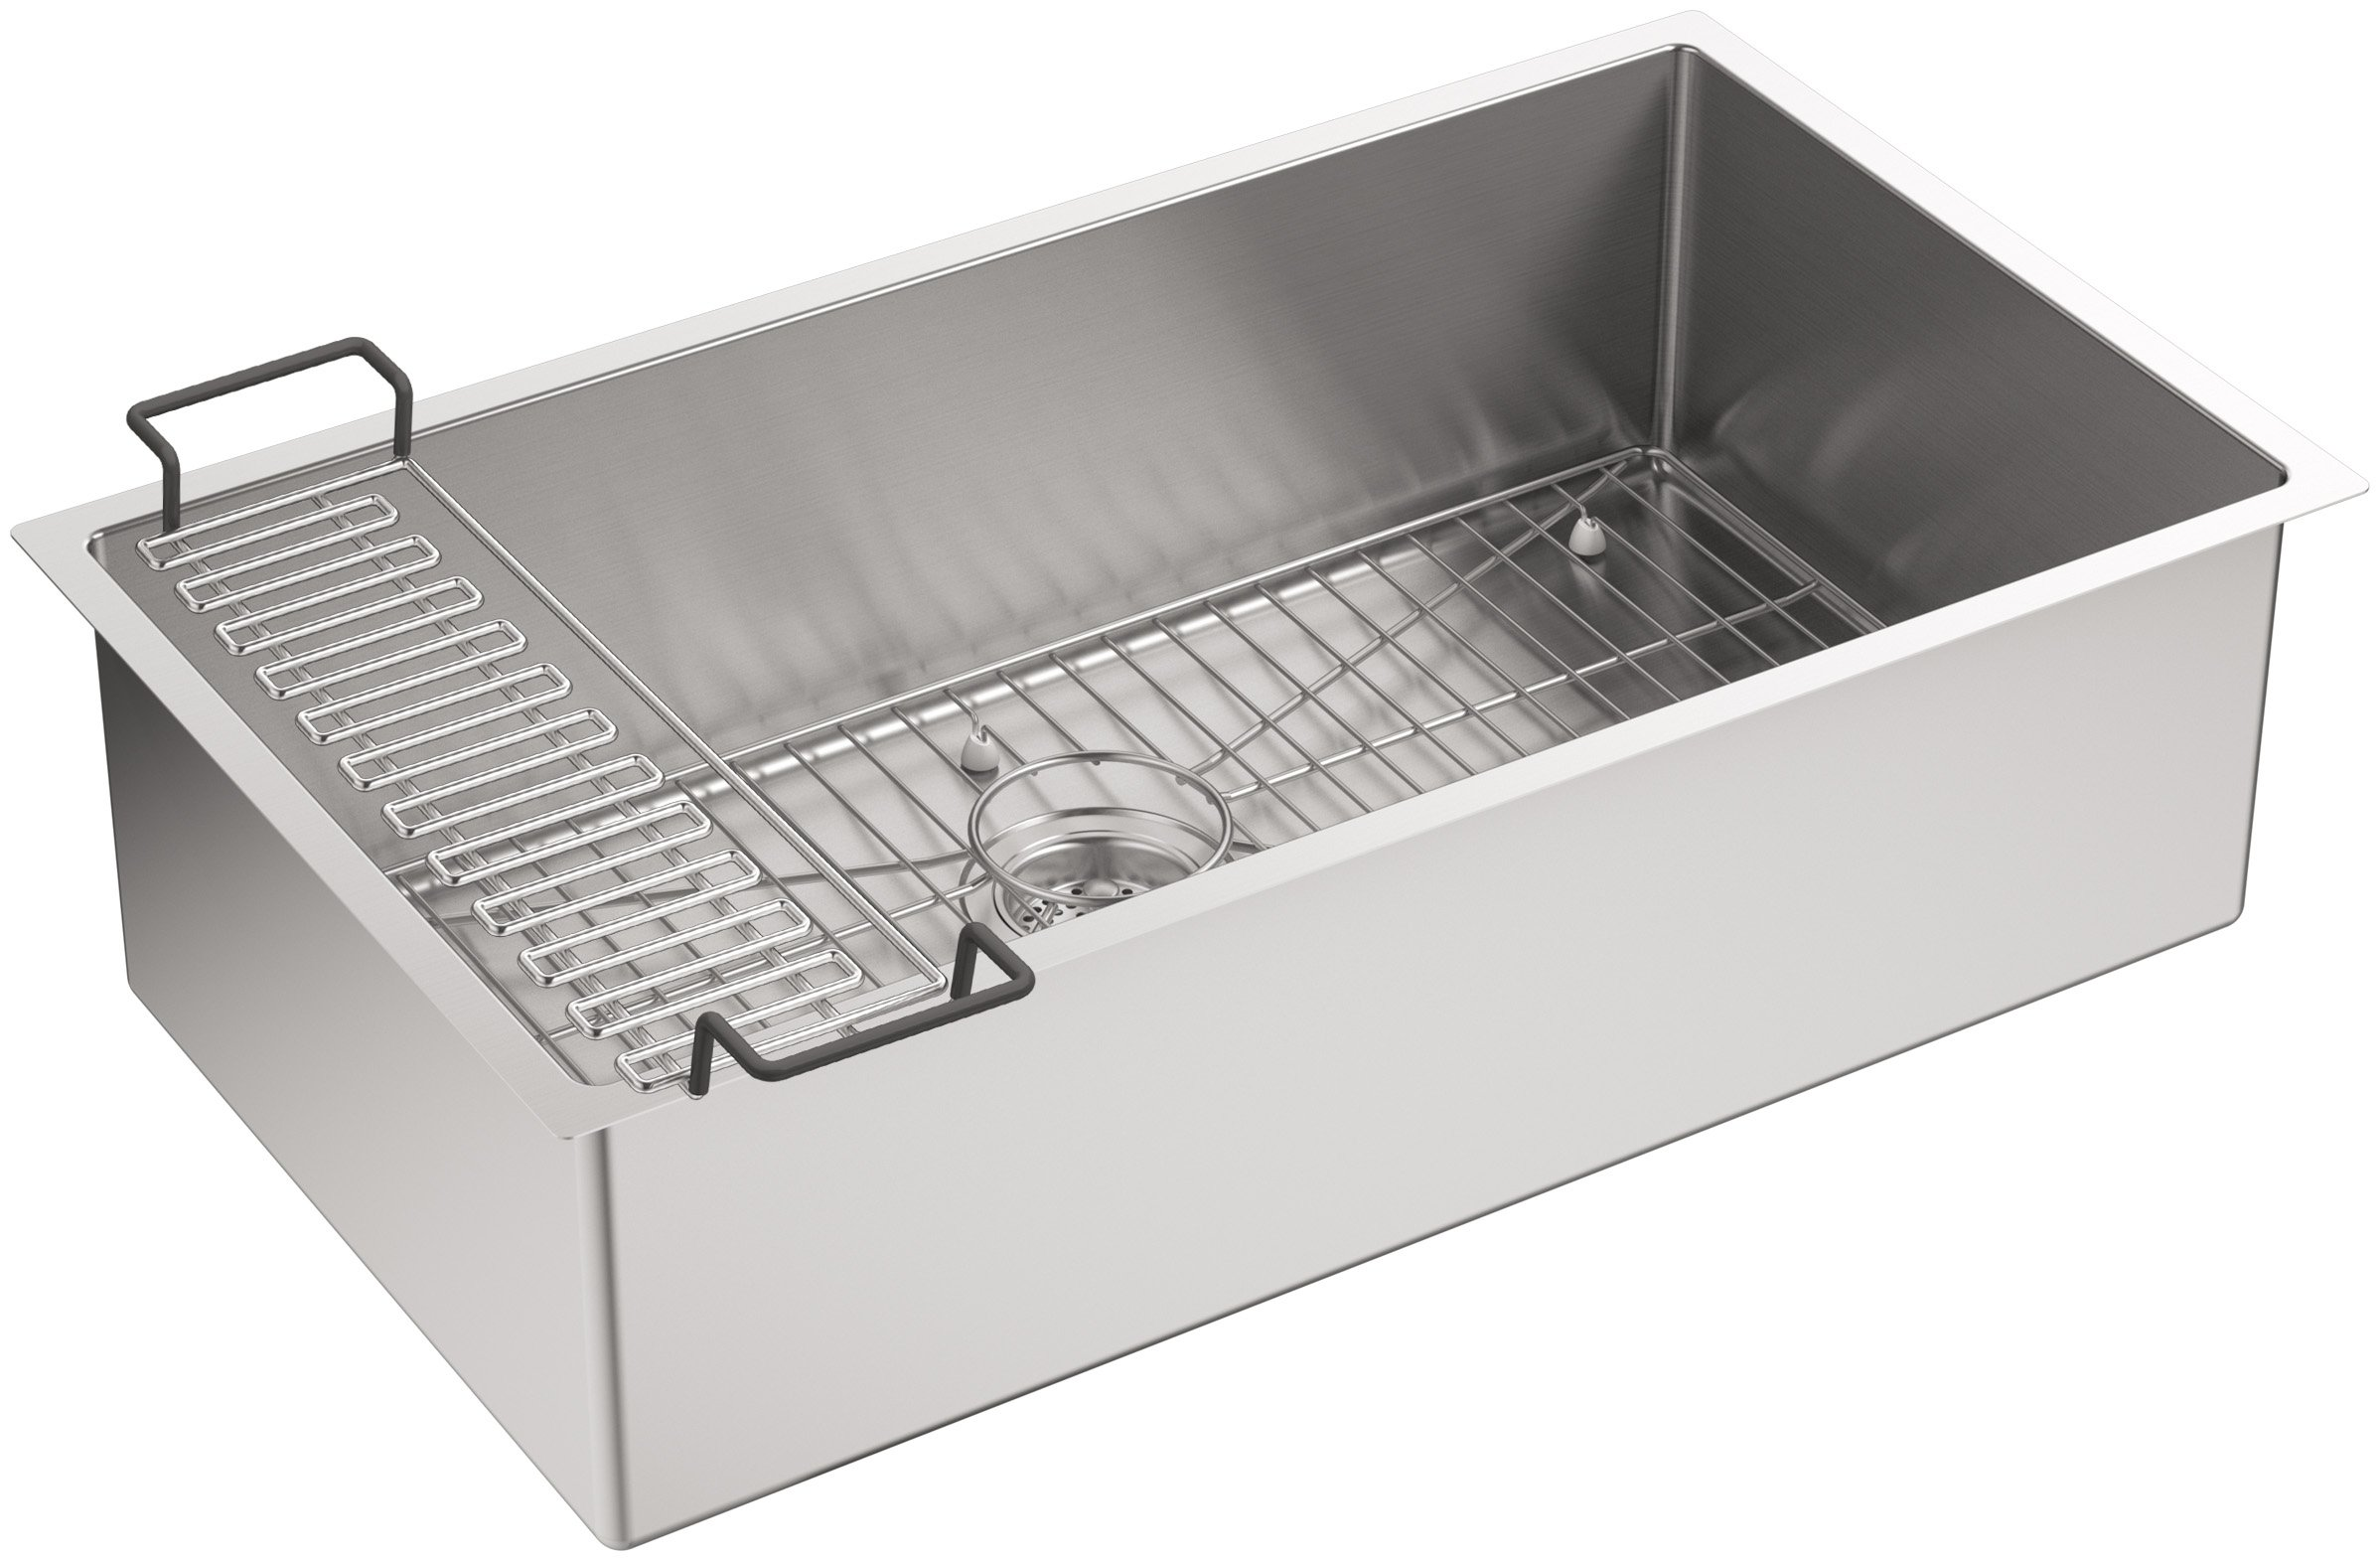 KOHLER K-5285-NA Strive 32 X 18-1/4 X 9-5/16-Inch Under-Mount Single Bowl Kitchen Sink with Basin Rack, Stainless Steel, 1-Pack by Kohler